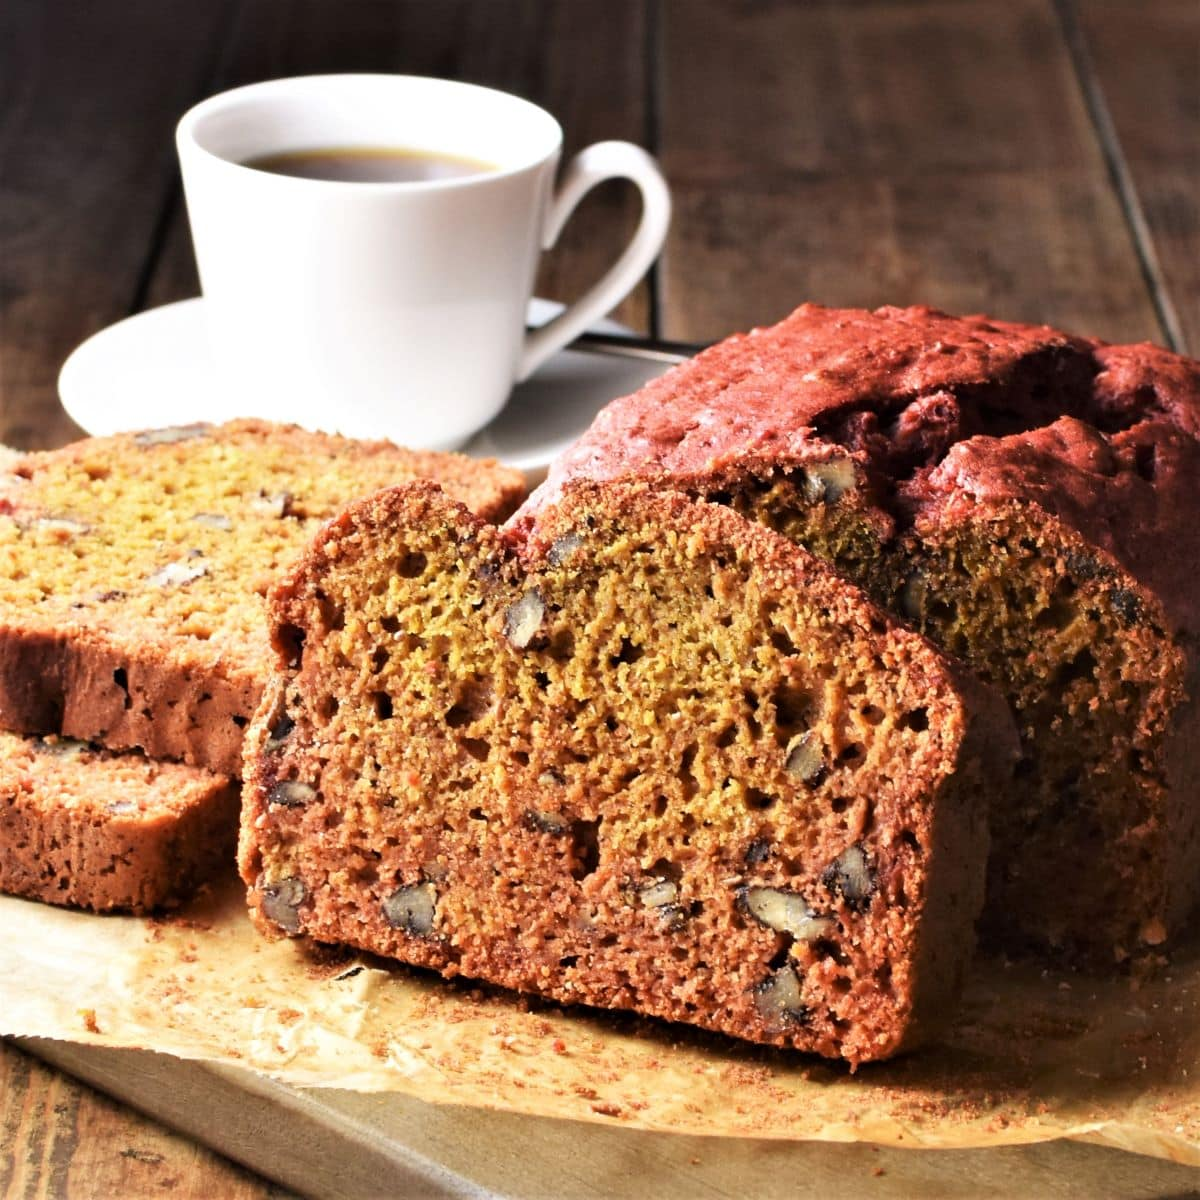 Side view of beetroot bread on top of parchment and cup of coffee in background.